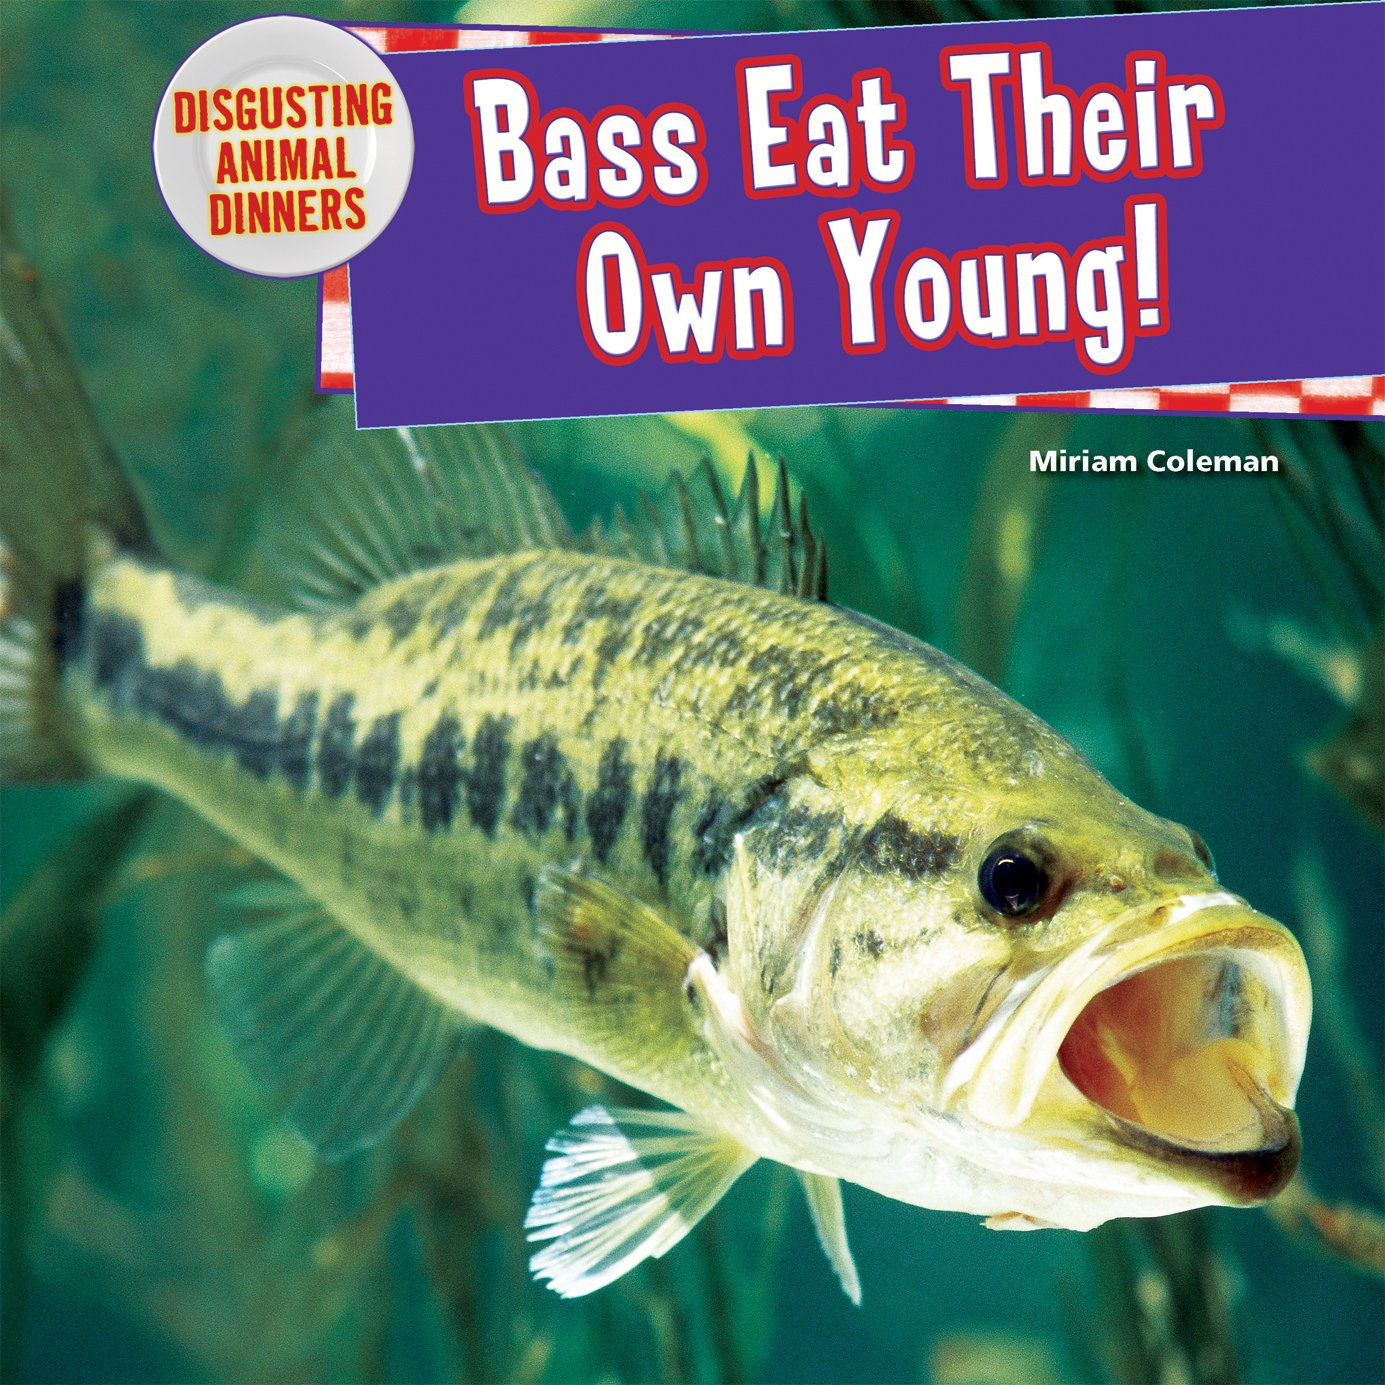 Bass Eat Their Own Young! (Disgusting Animal Dinners)